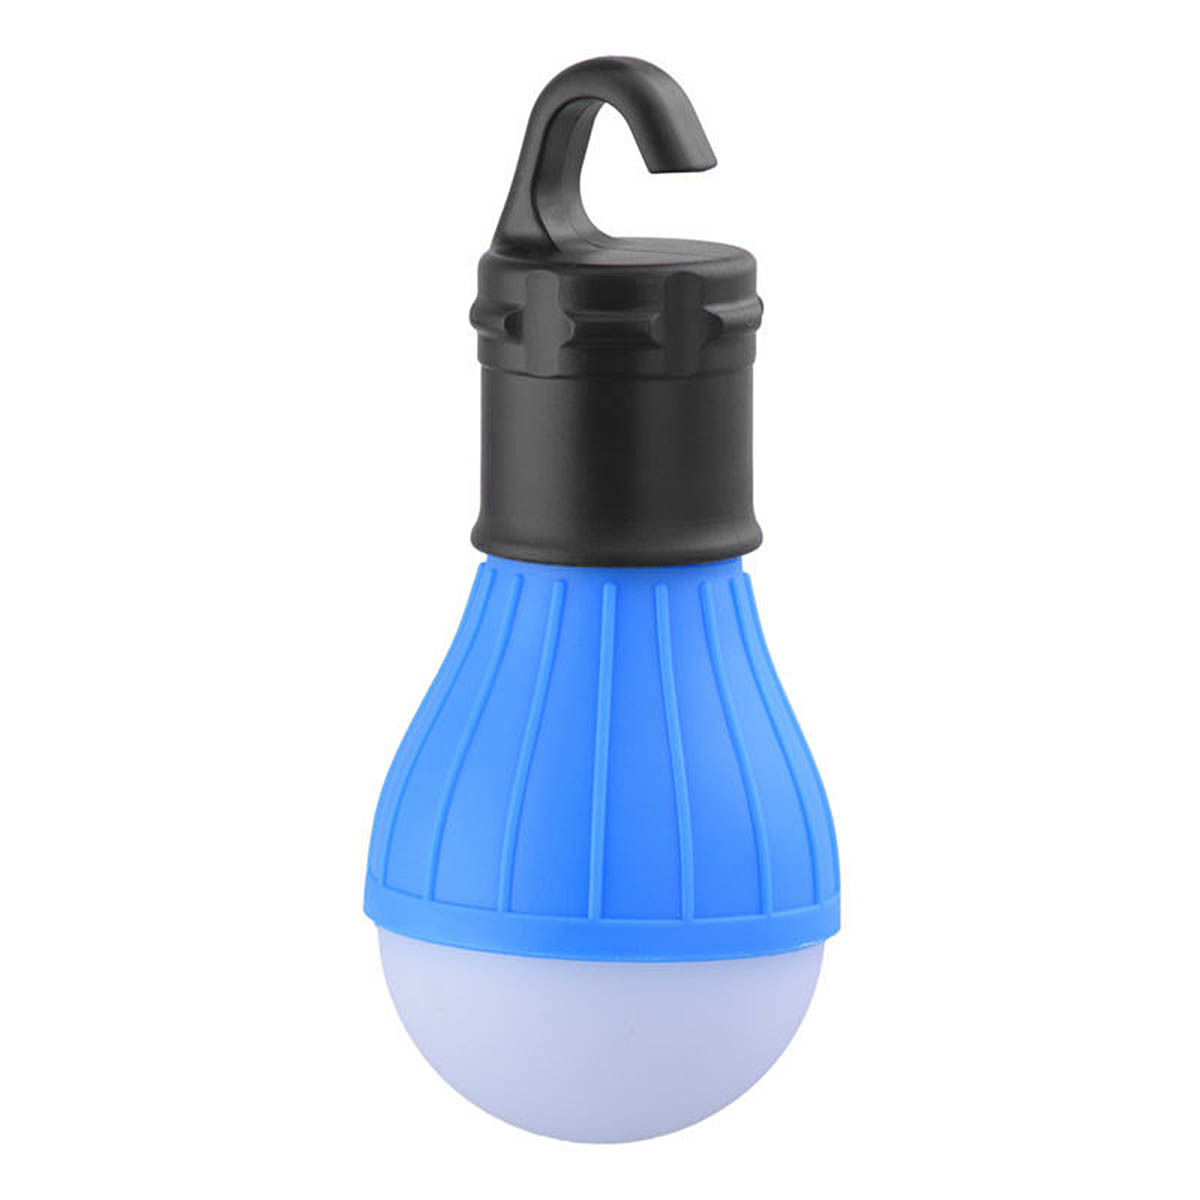 Portable Emergency Camping Light Battery Operated Tent Lights Waterproof Bulb For Hiking Fishing Outdoor